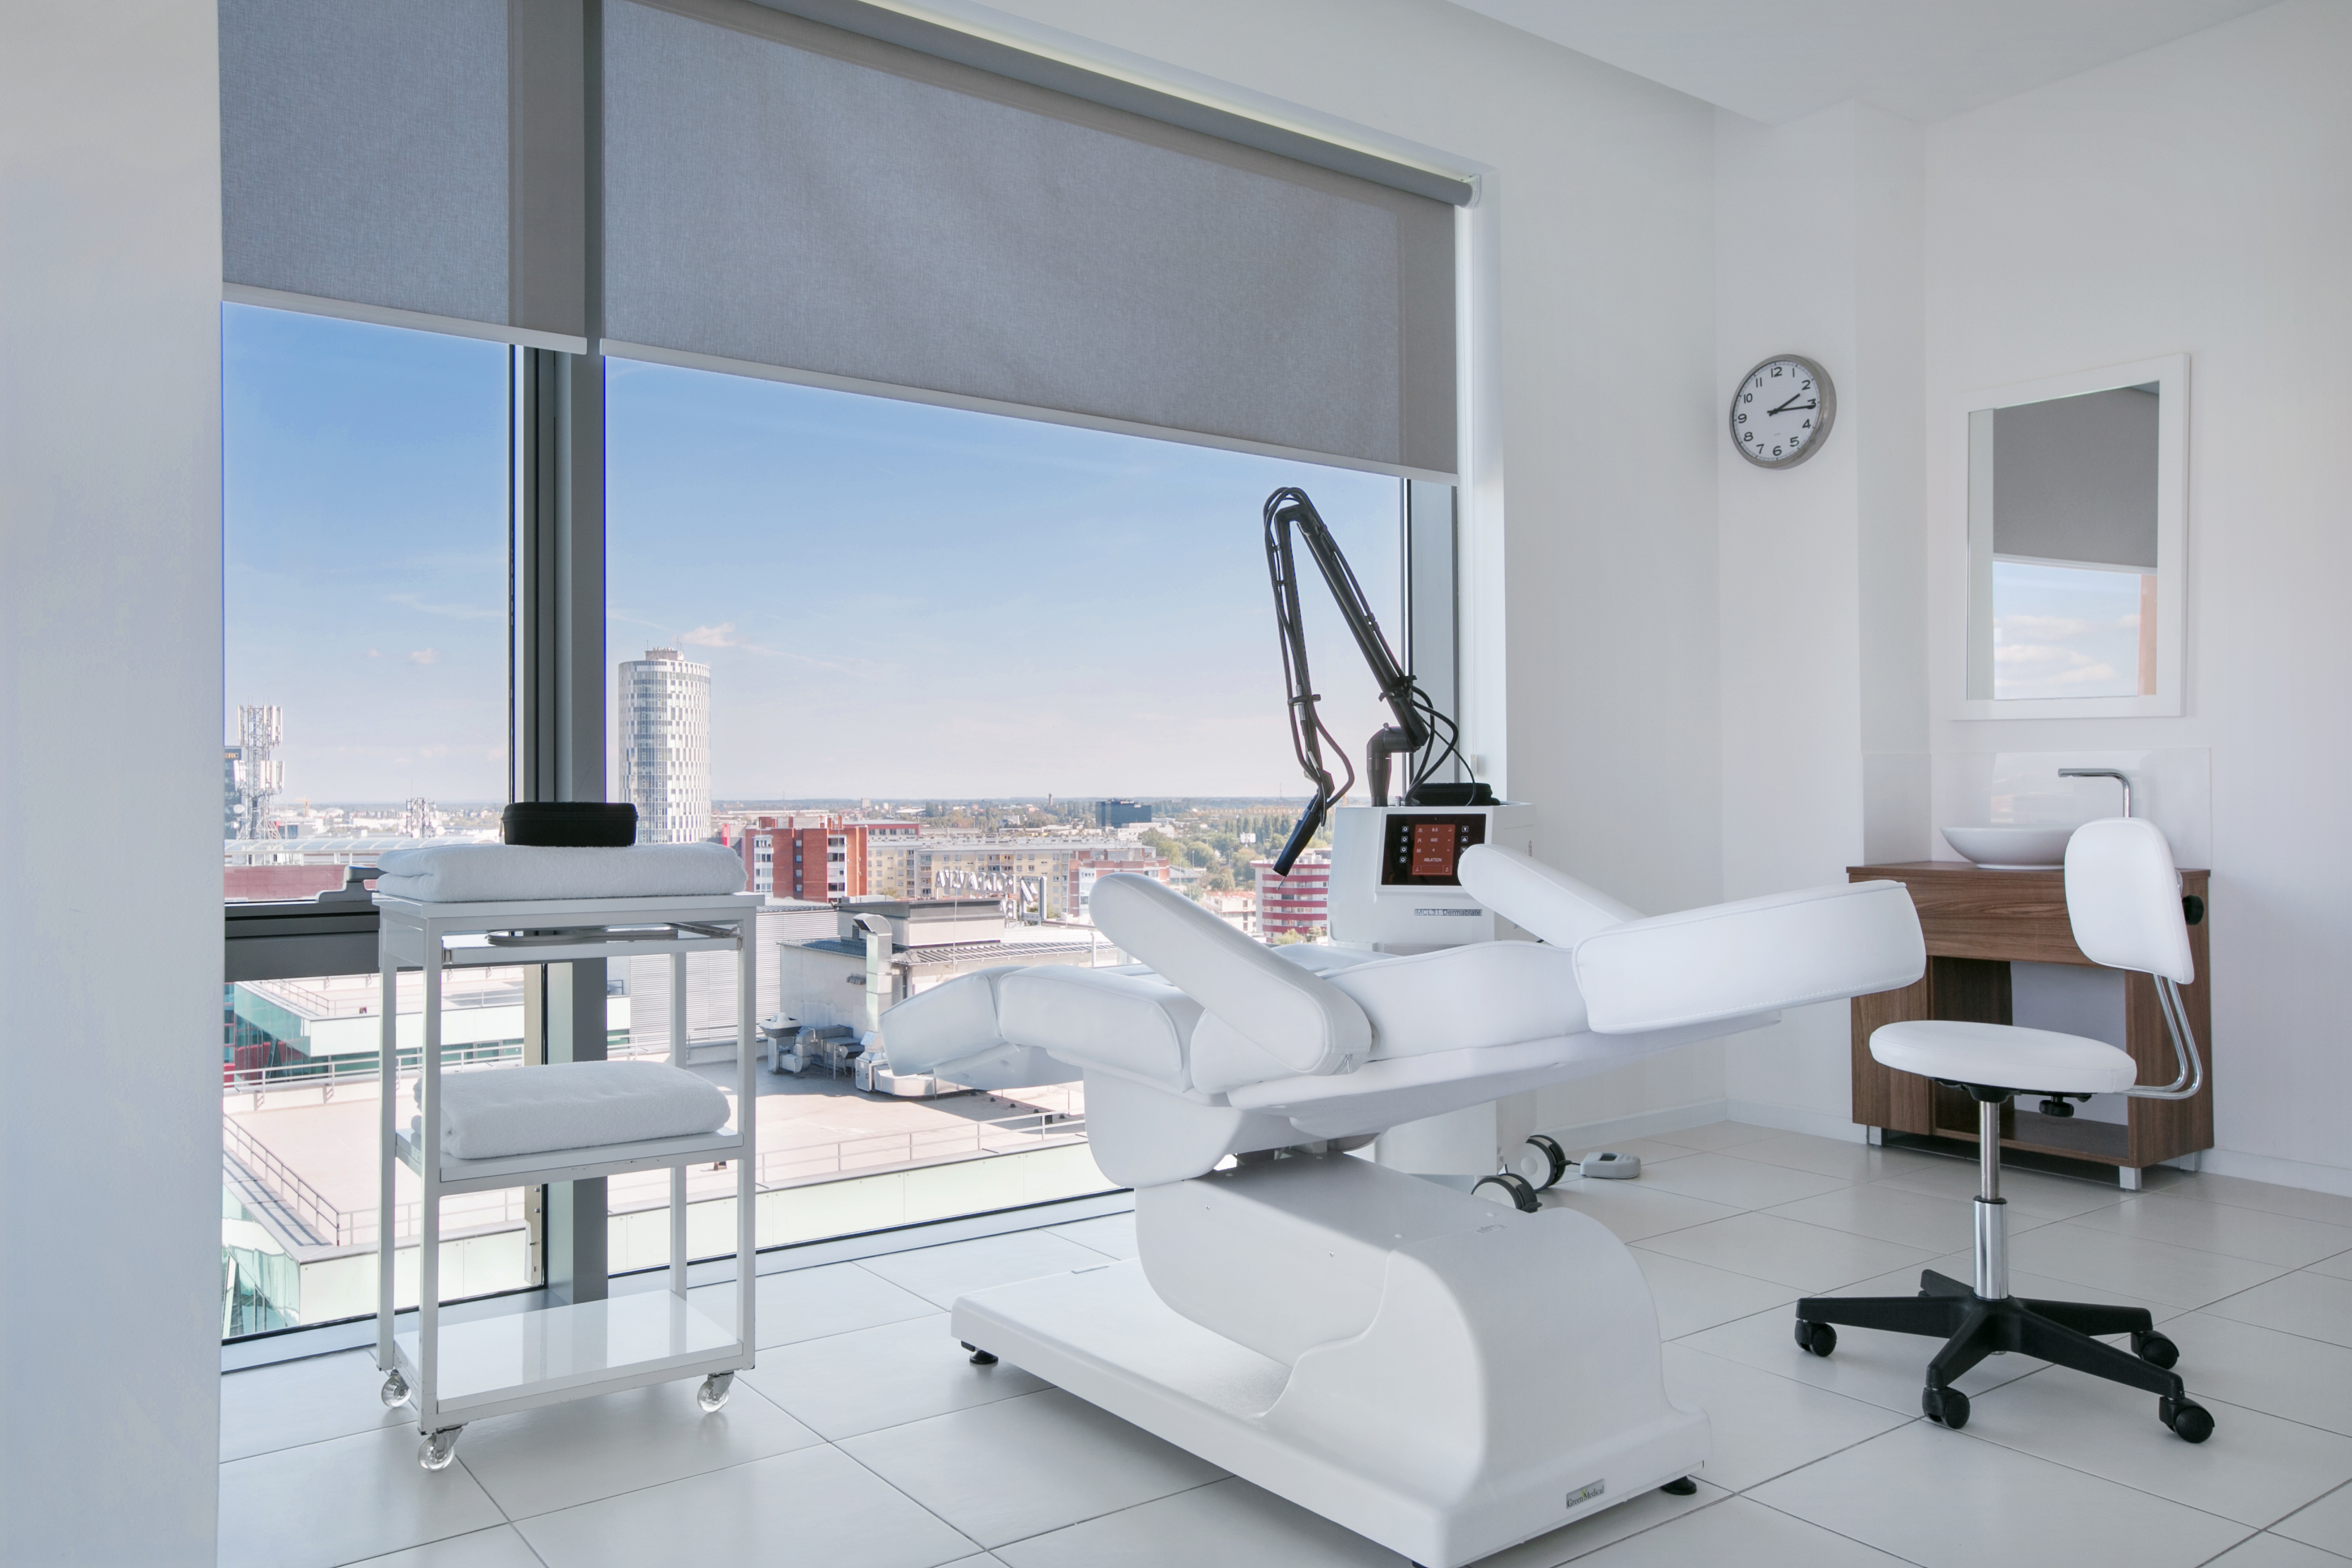 Laser treatments – revolutionizing the beauty and health industry